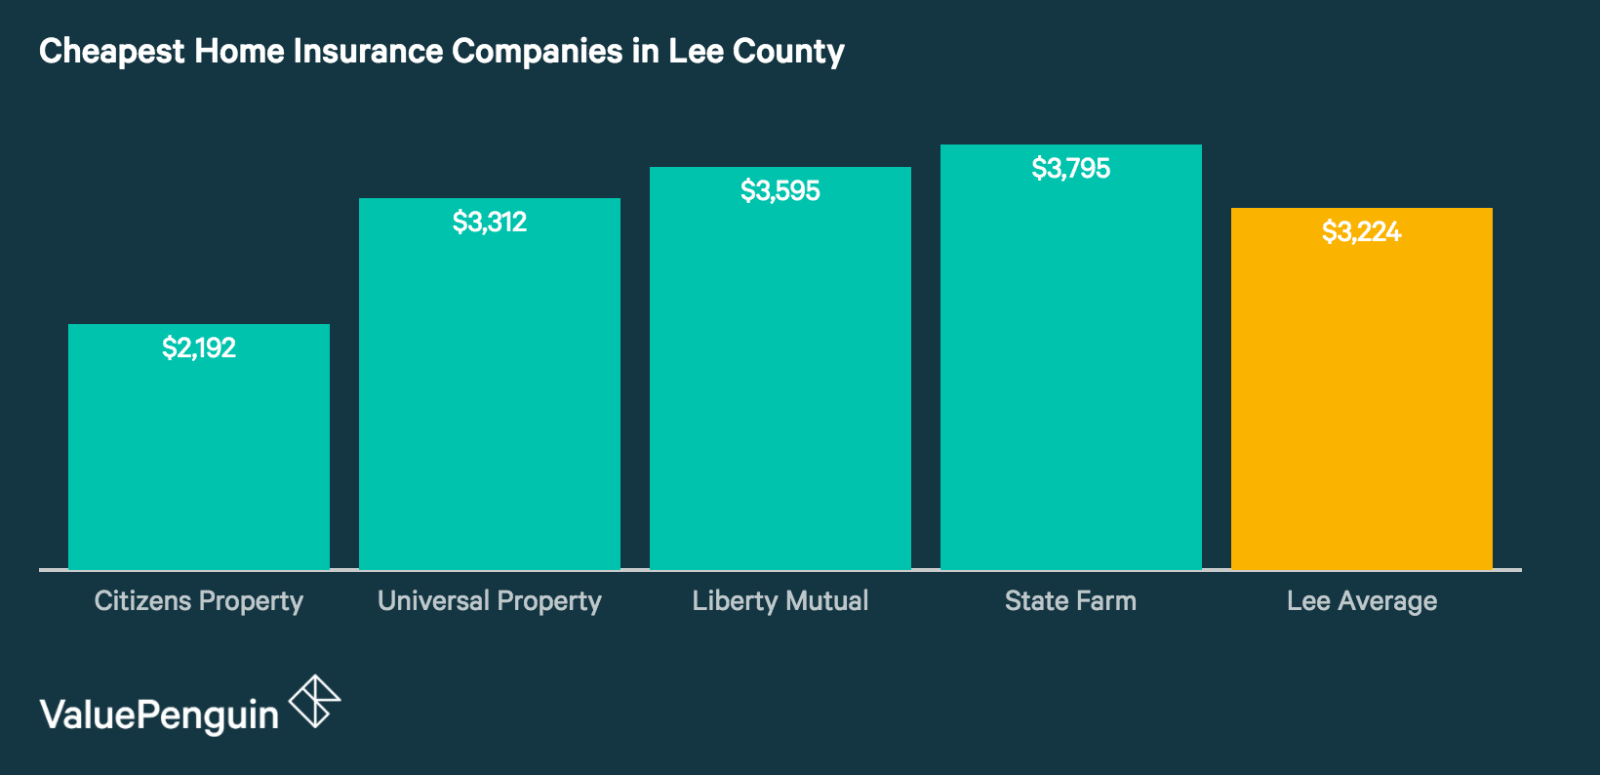 Quotes from Lee County's Cheapest and Best Home Insurance Companies